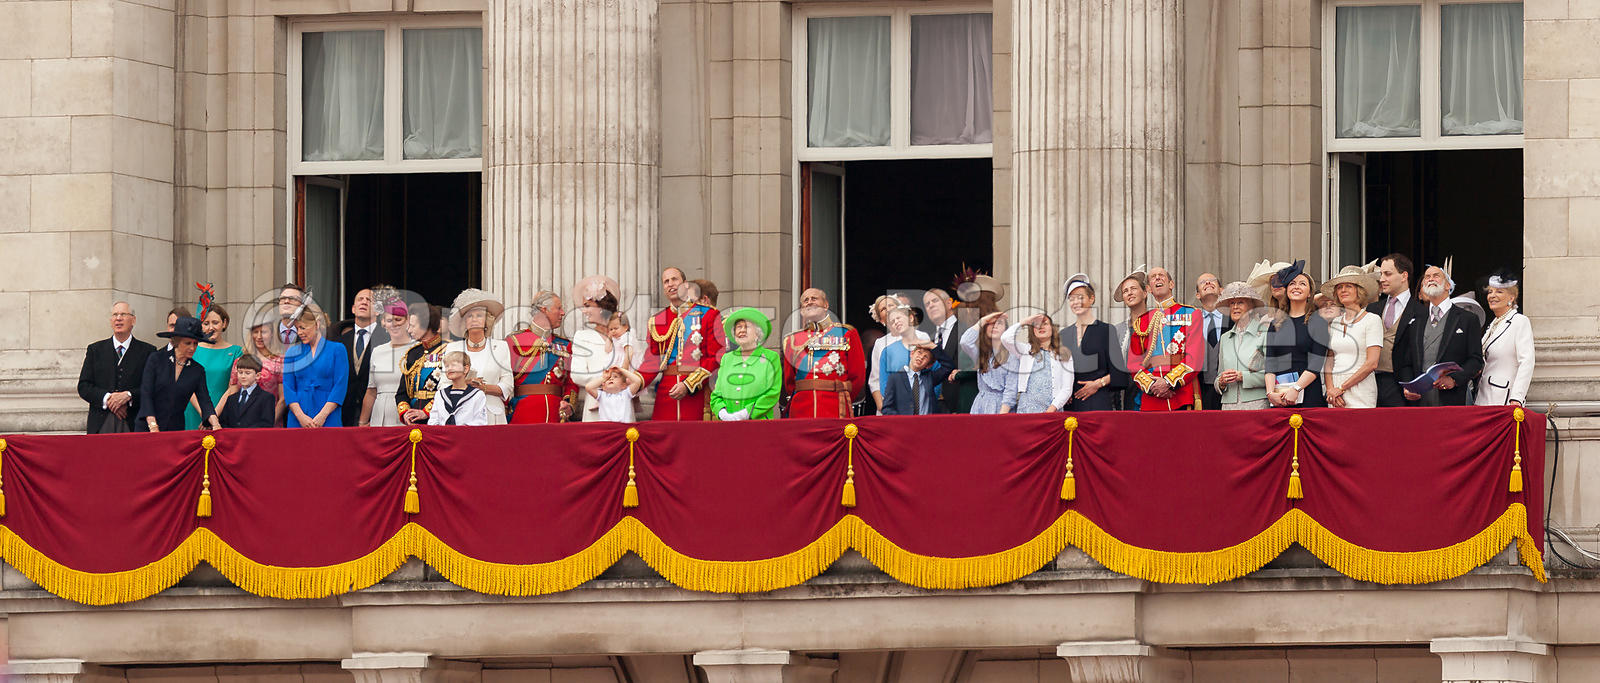 The Royal Family Looking to the Sky during the Flypast over Buckingham Palace